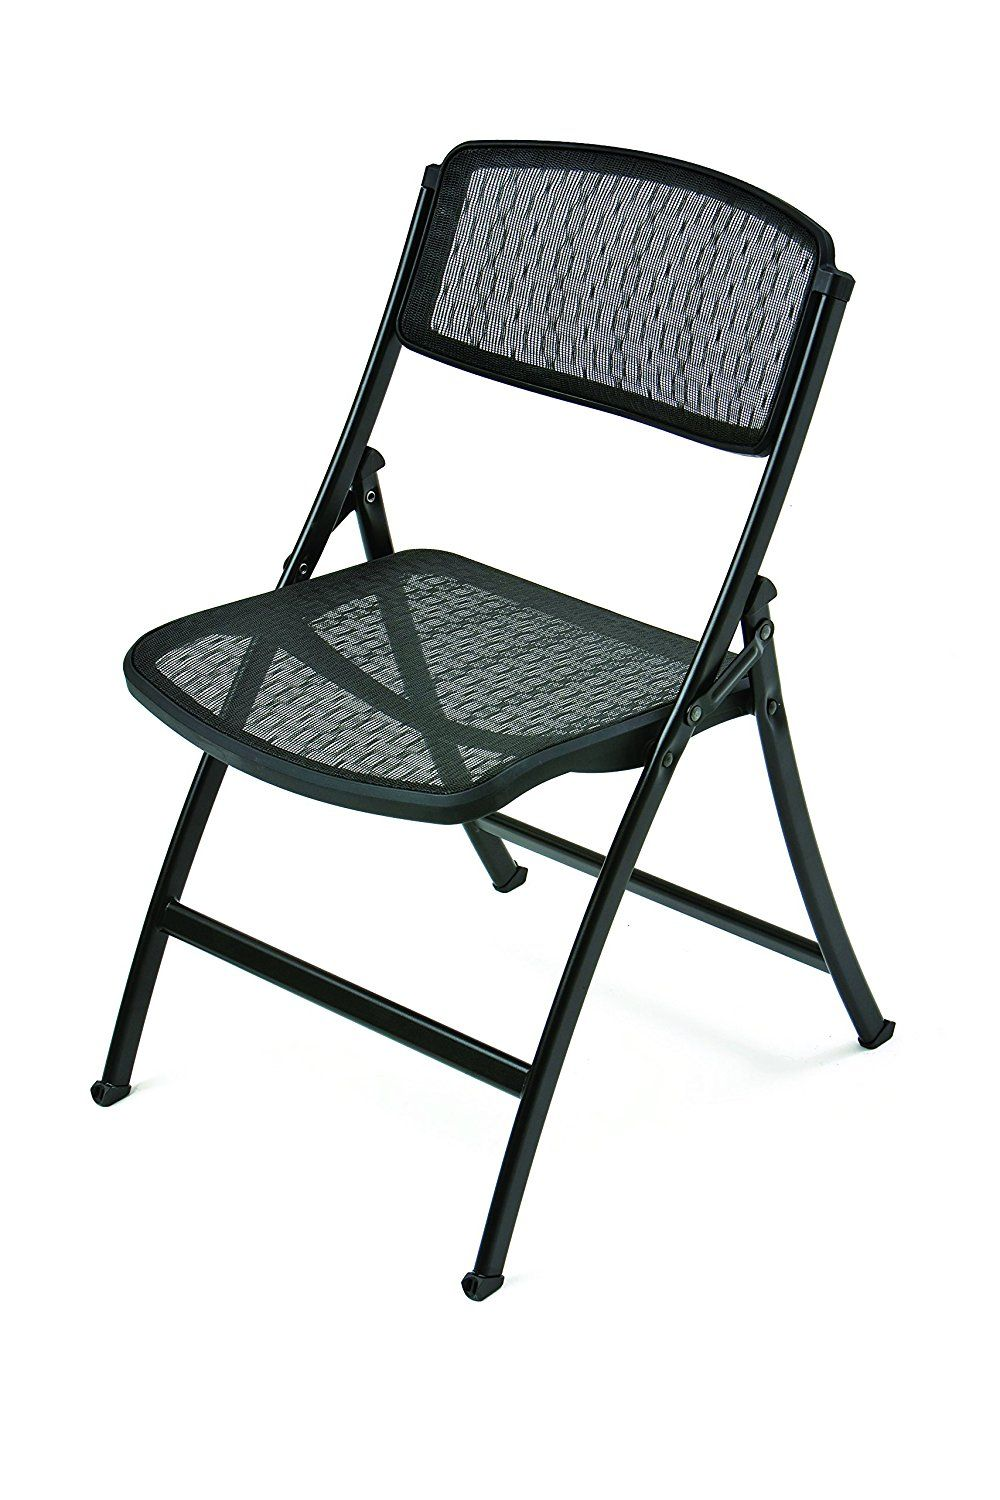 Folding Guest Chair from Mity-Life